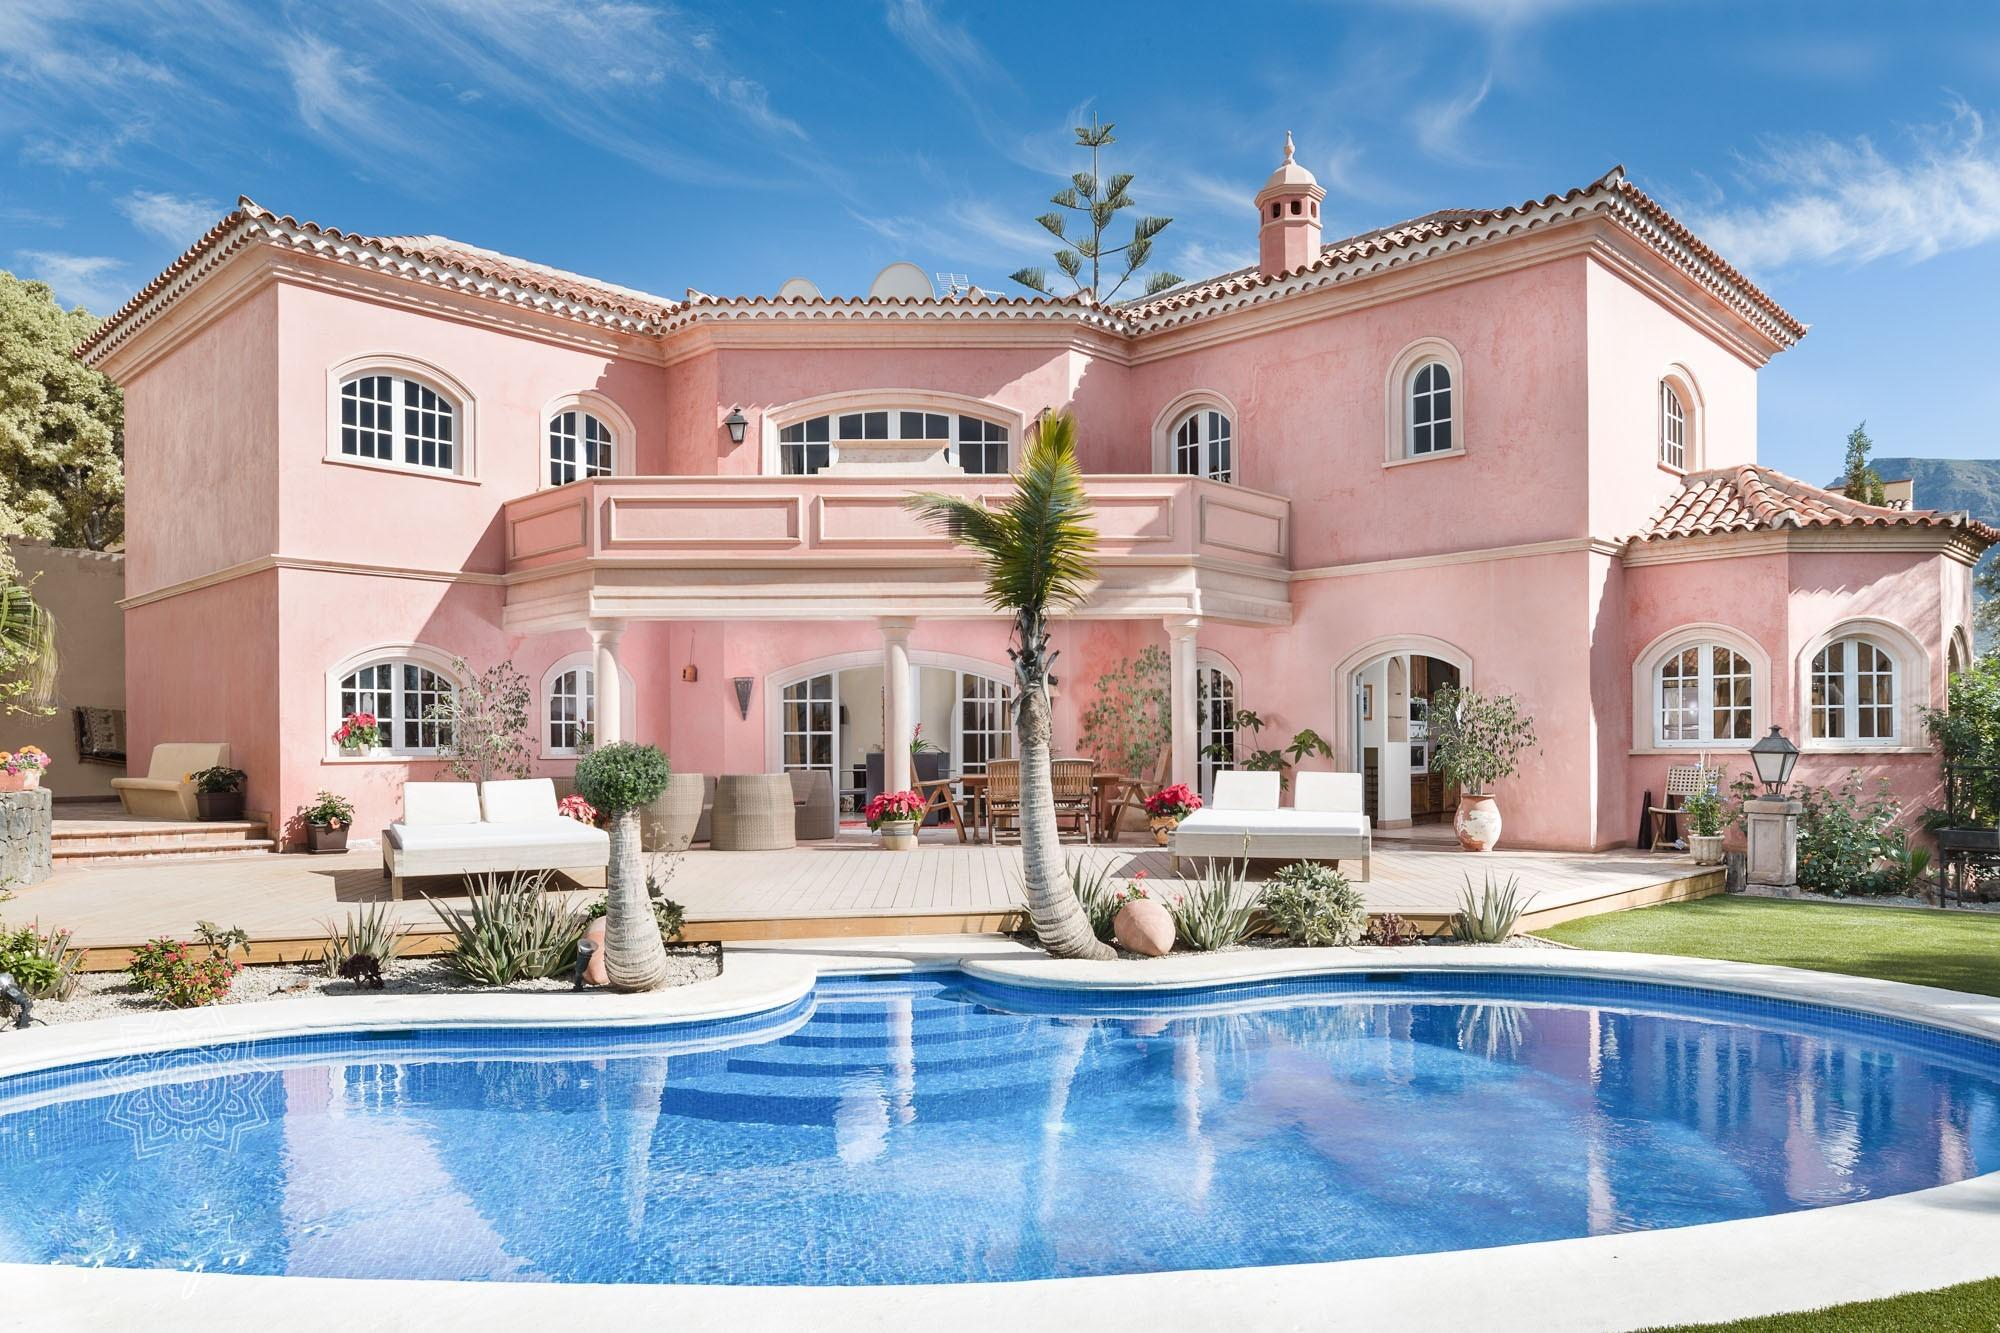 Casa Castle - luxury 4 bed, with heated pool, Adeje - Tenerife Holiday Homes